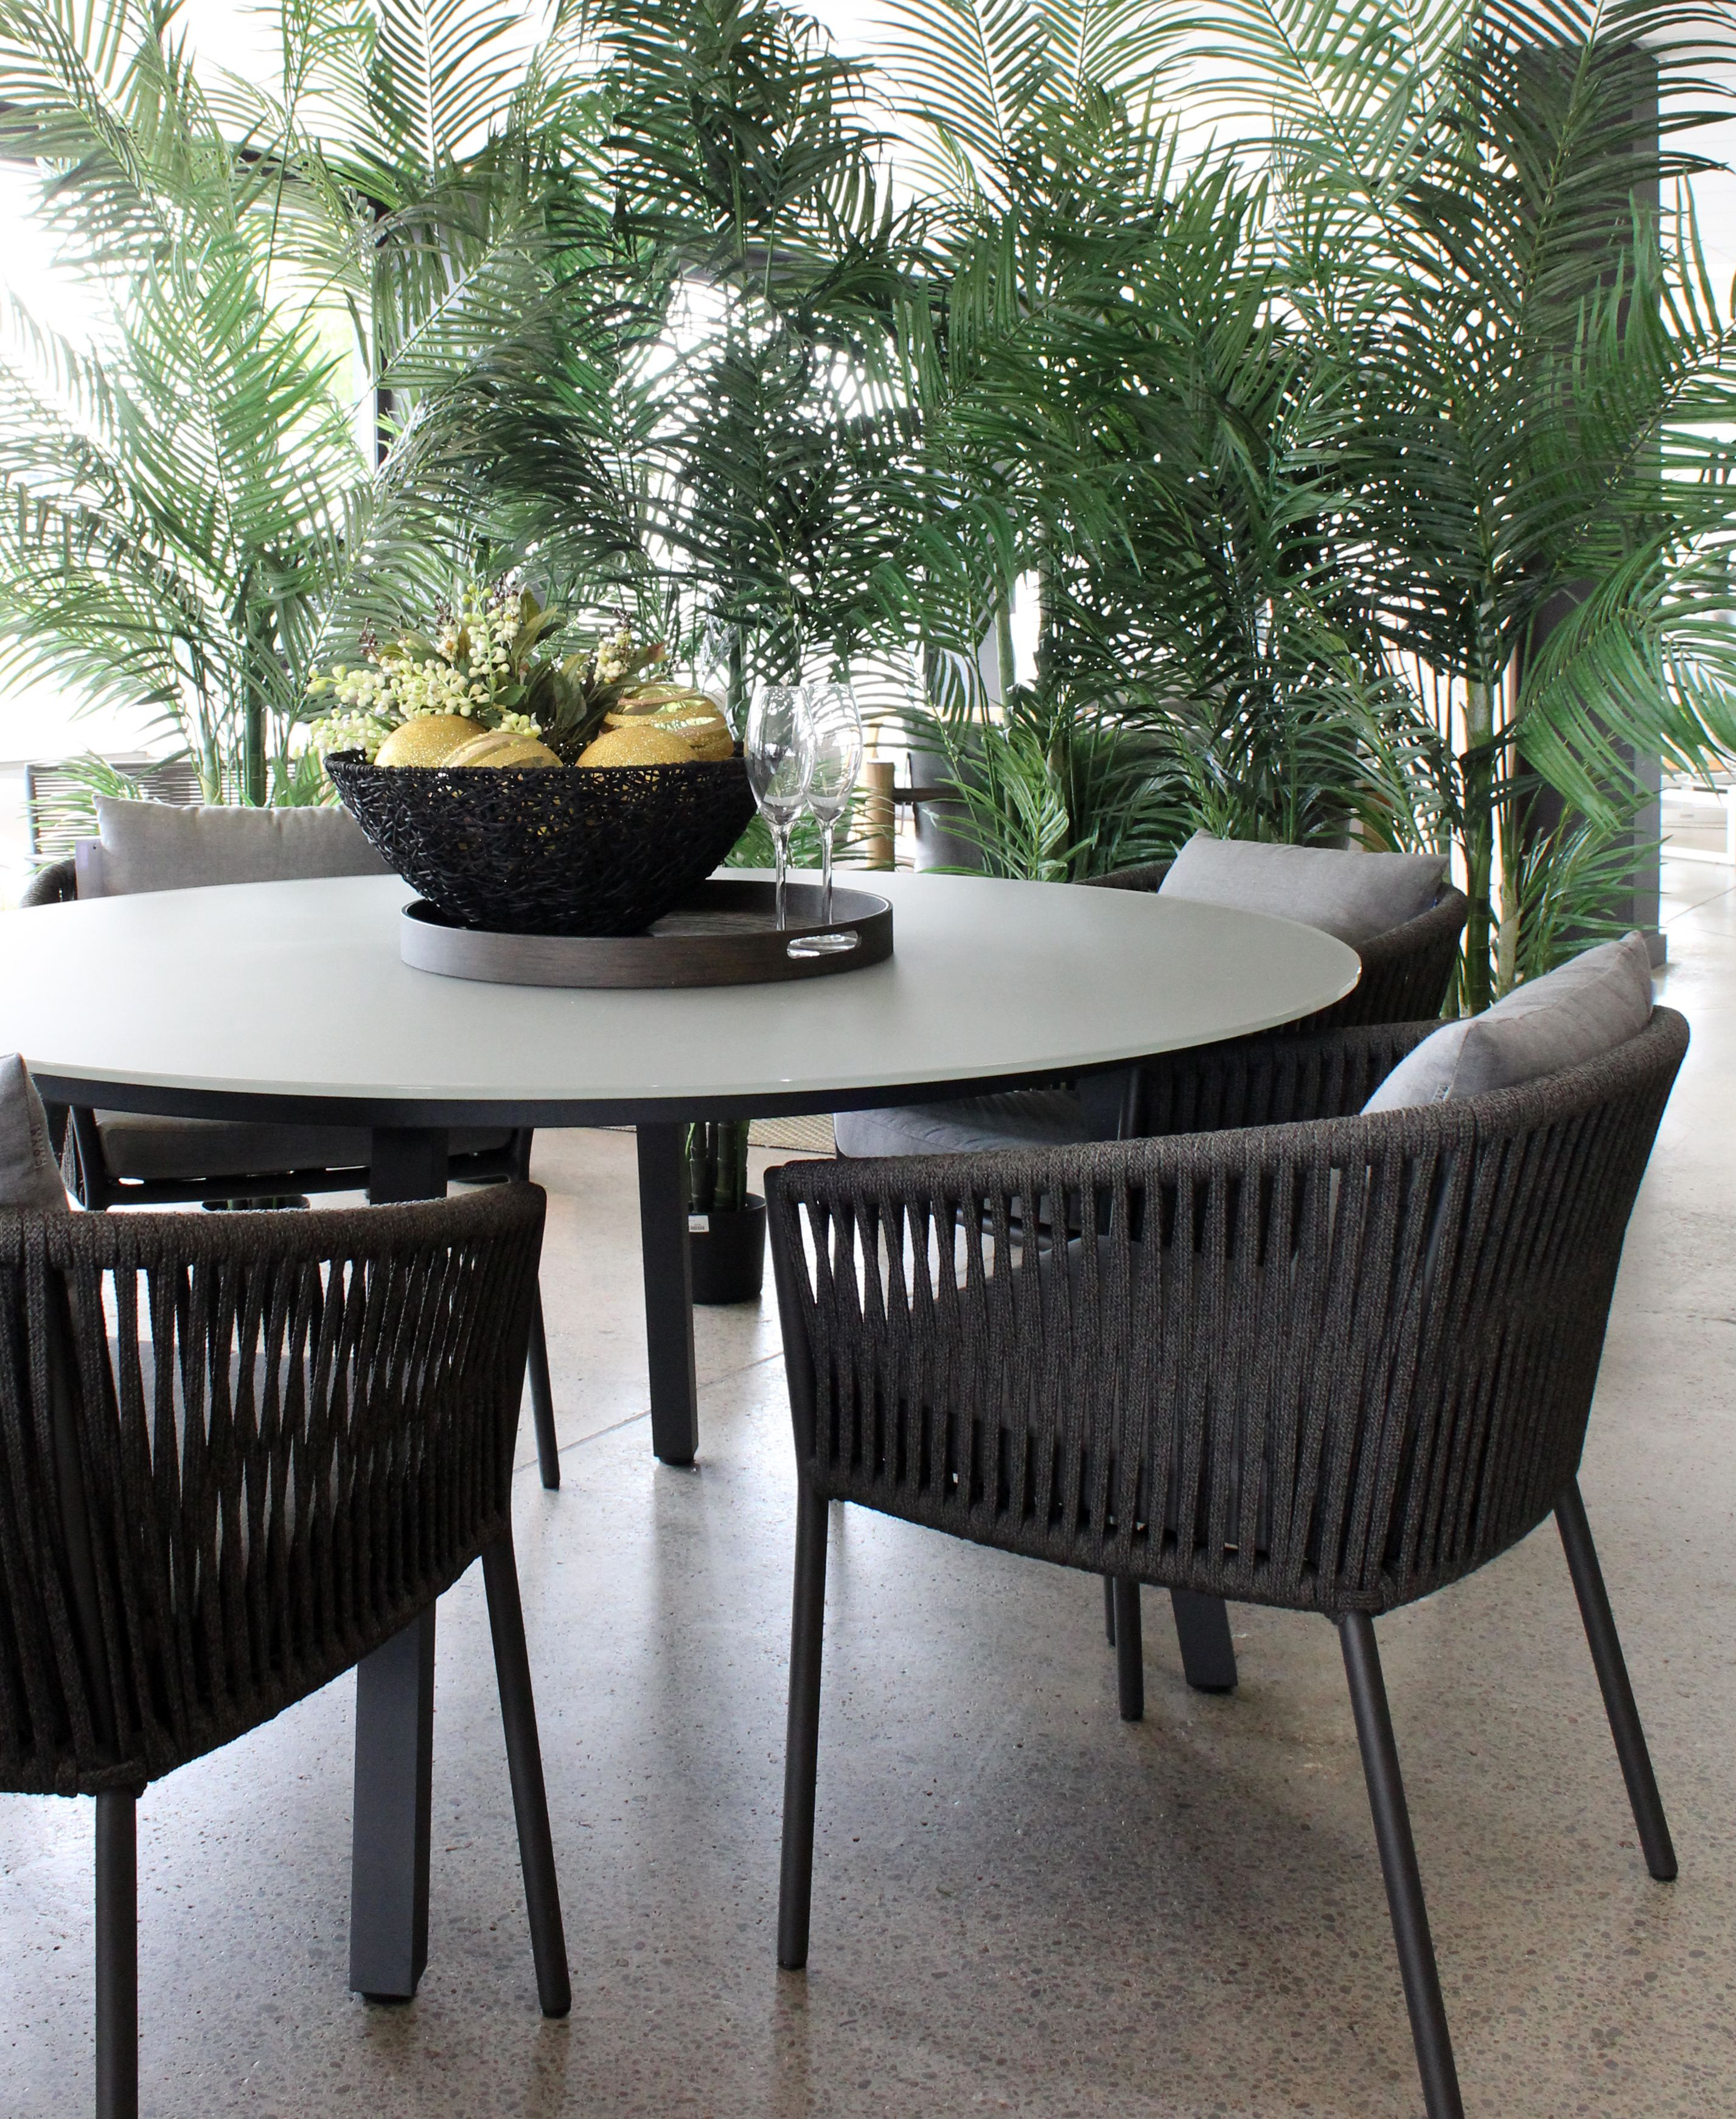 Cove is a carefully curated collection of outdoor furniture and accessories that are designed to offer